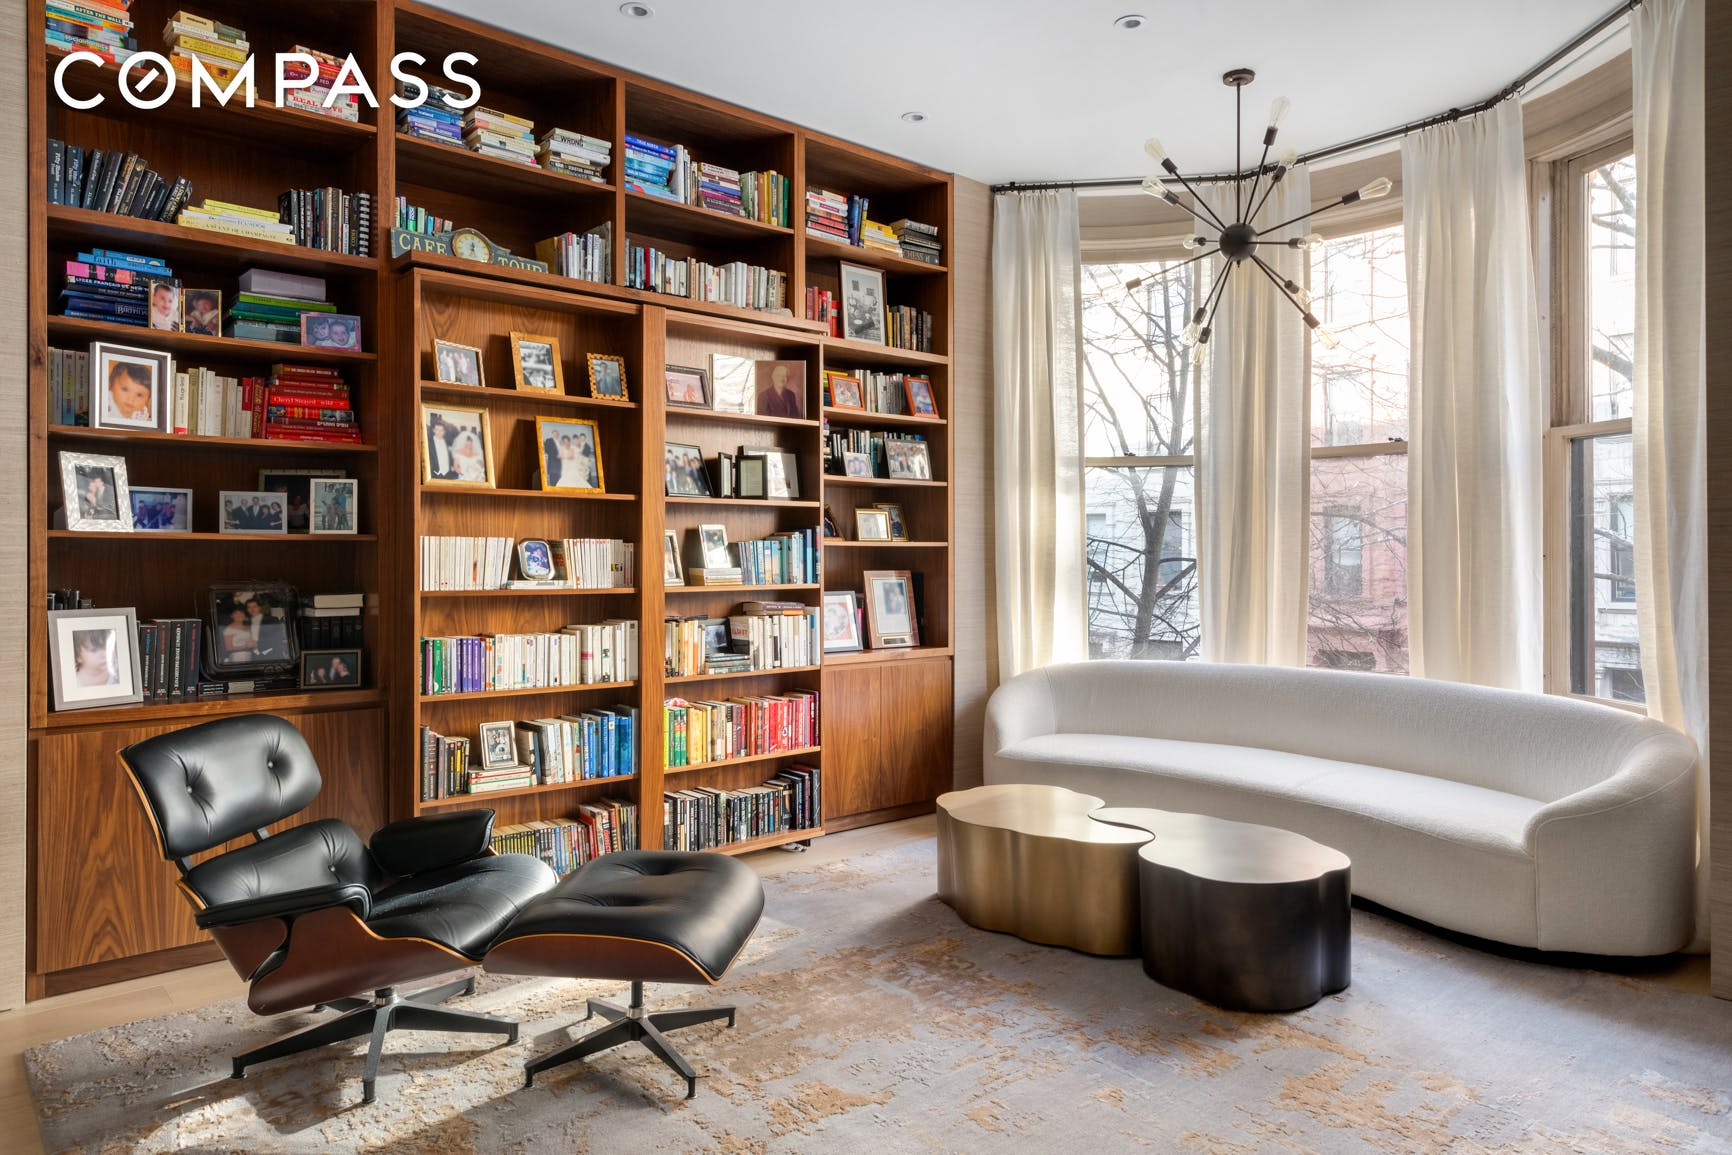 32 West 76th Street Upper West Side New York NY 10023